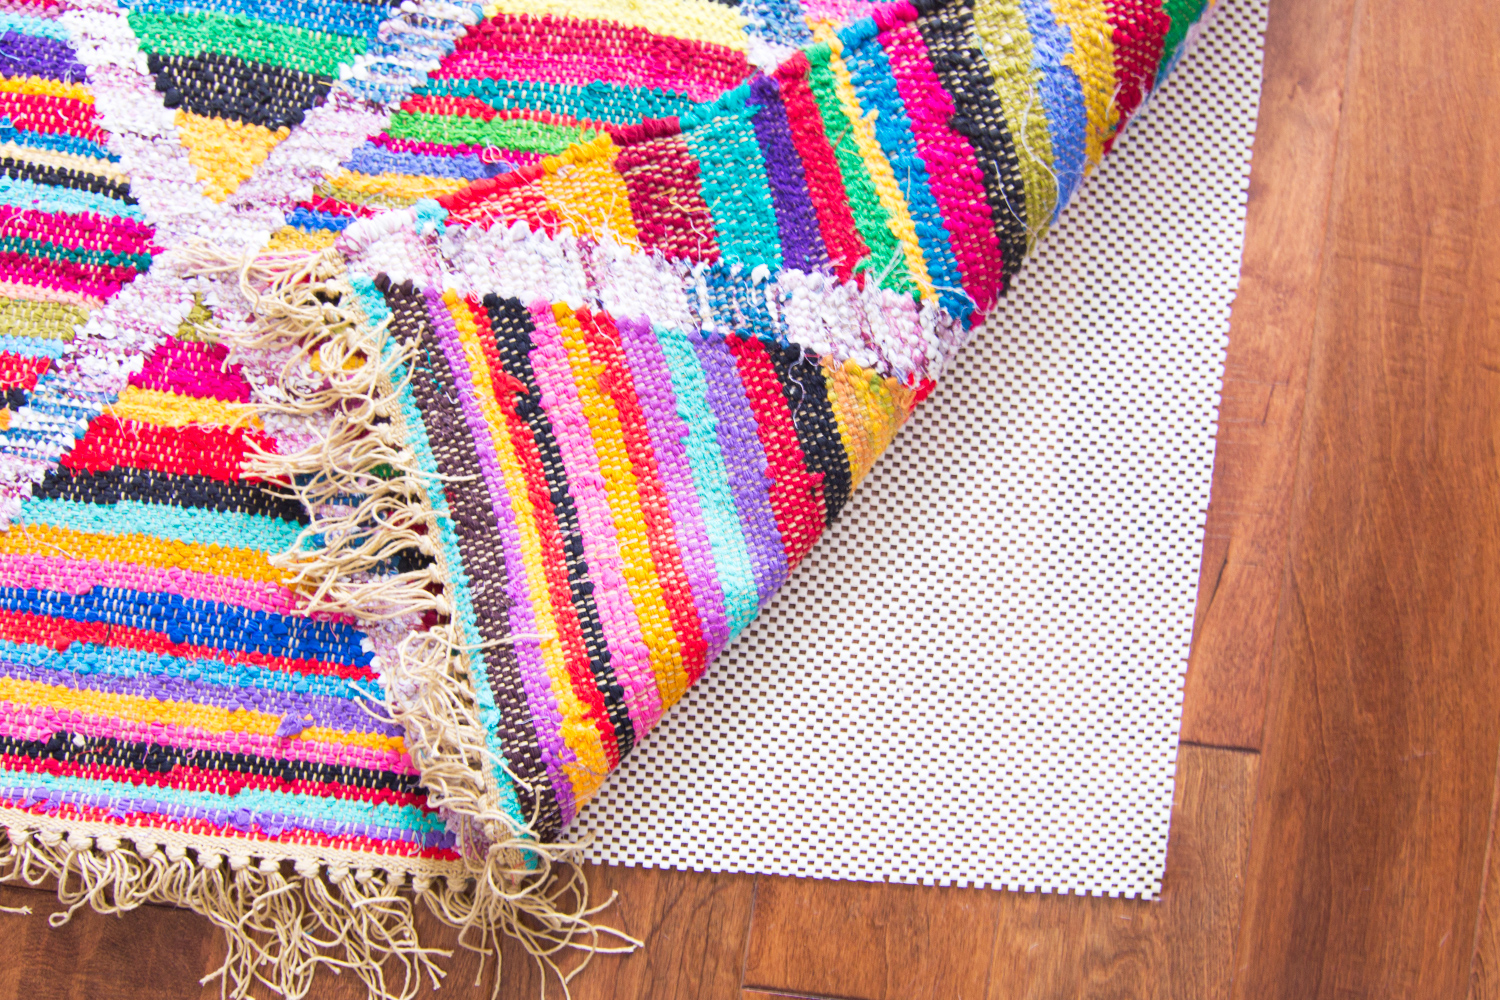 Loving this bright multicolored rug!